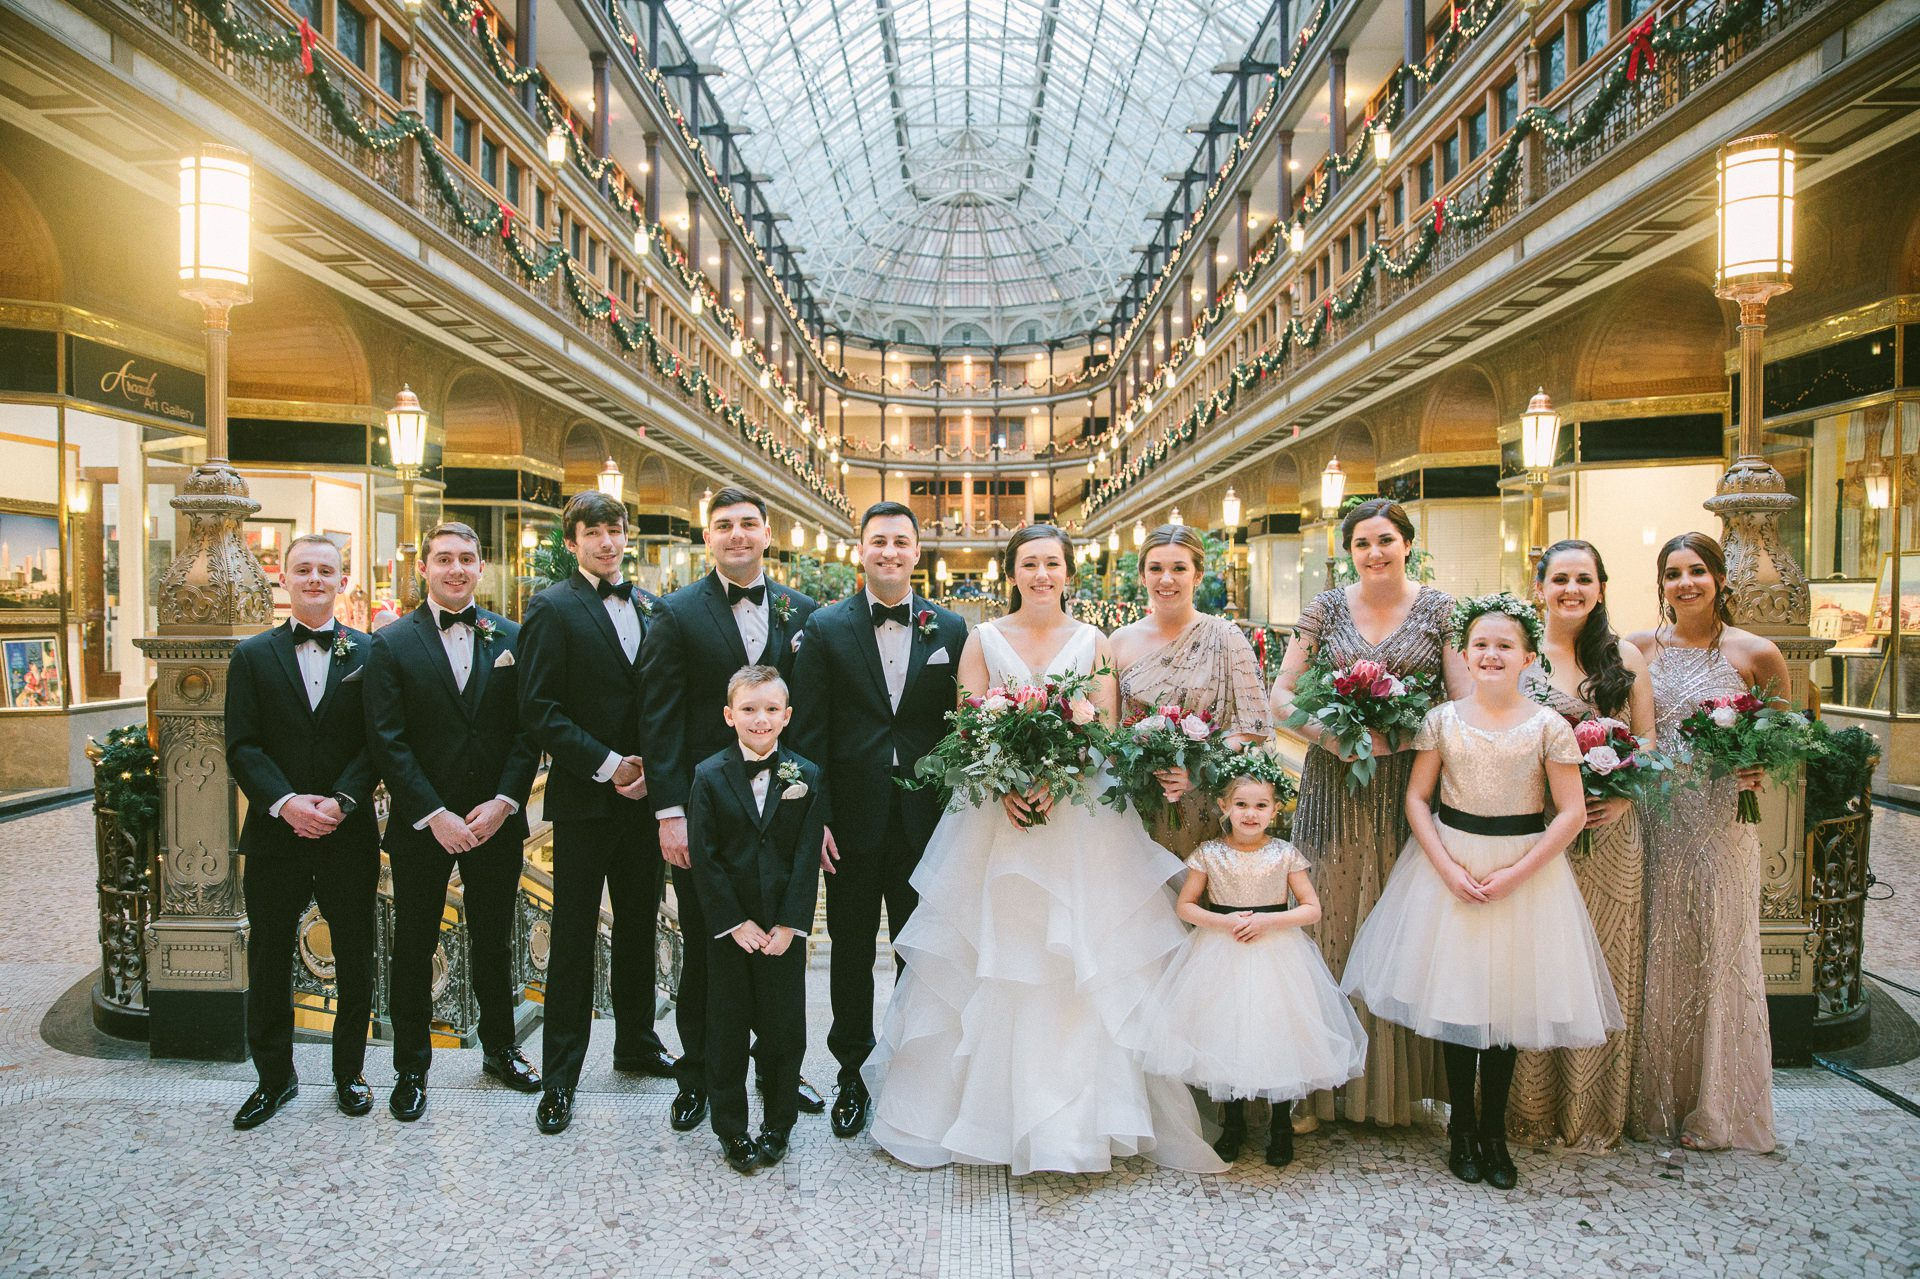 Hyatt Old Arcade Wedding Photographer in Cleveland 1 30.jpg